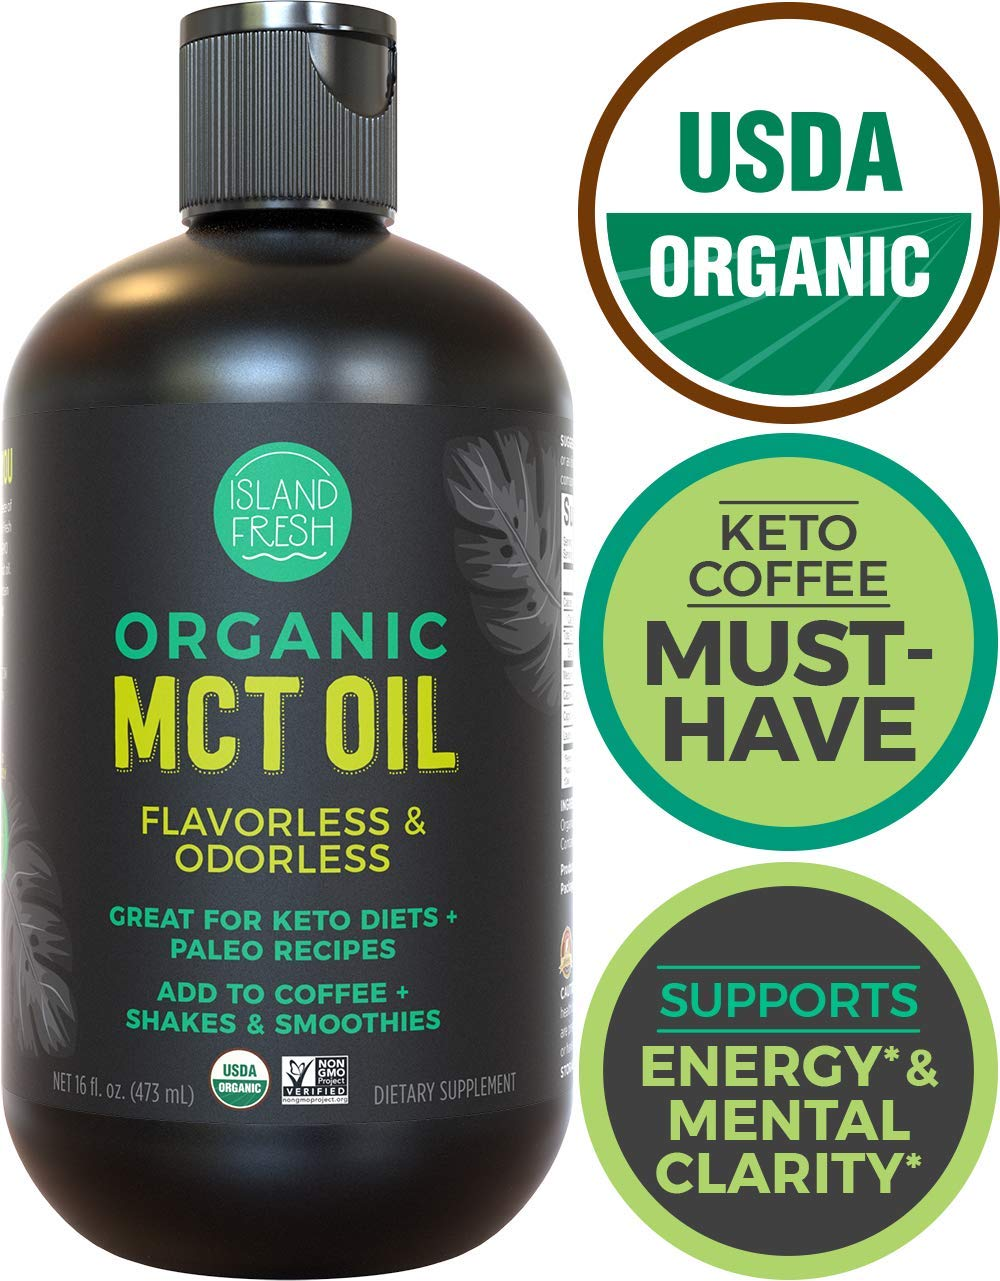 Organic MCT Oil For Keto Diet | Perfect for Morning Coffee, Helps Support Increased Energy | Made From 100% Organic Coconuts (16 fl. oz) by Island Fresh